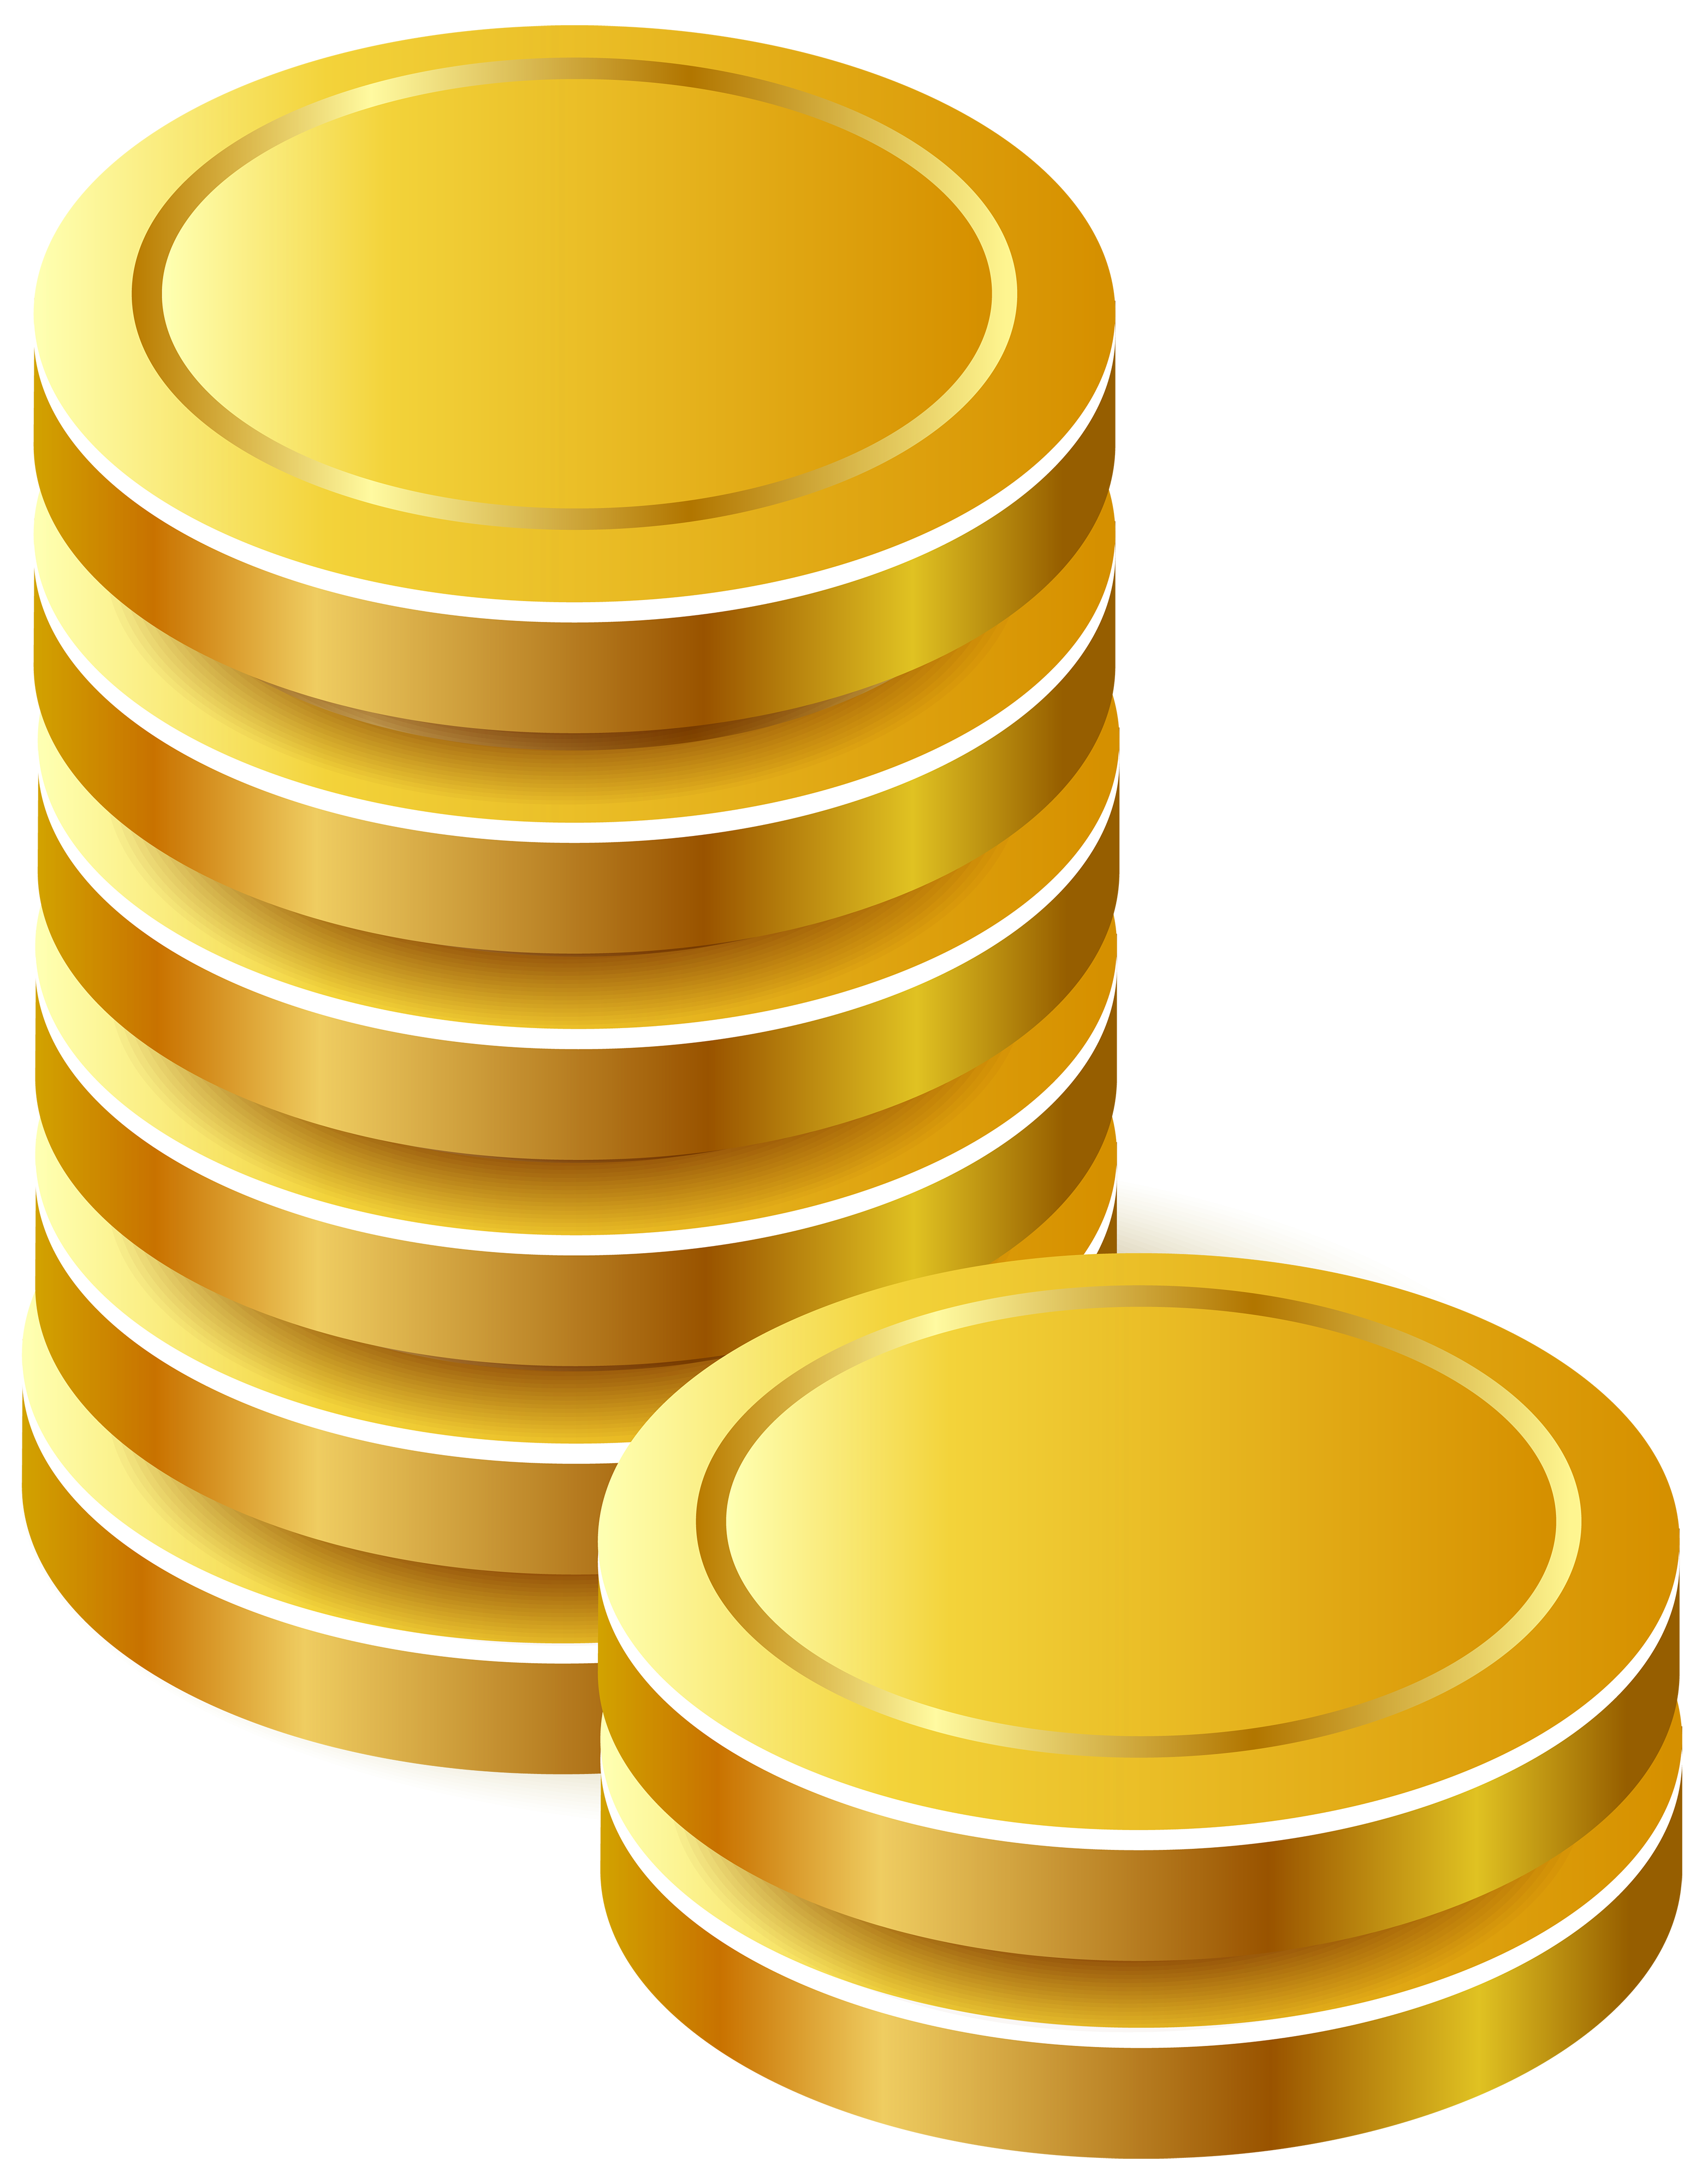 Download Gold Coins PNG Image for Free.